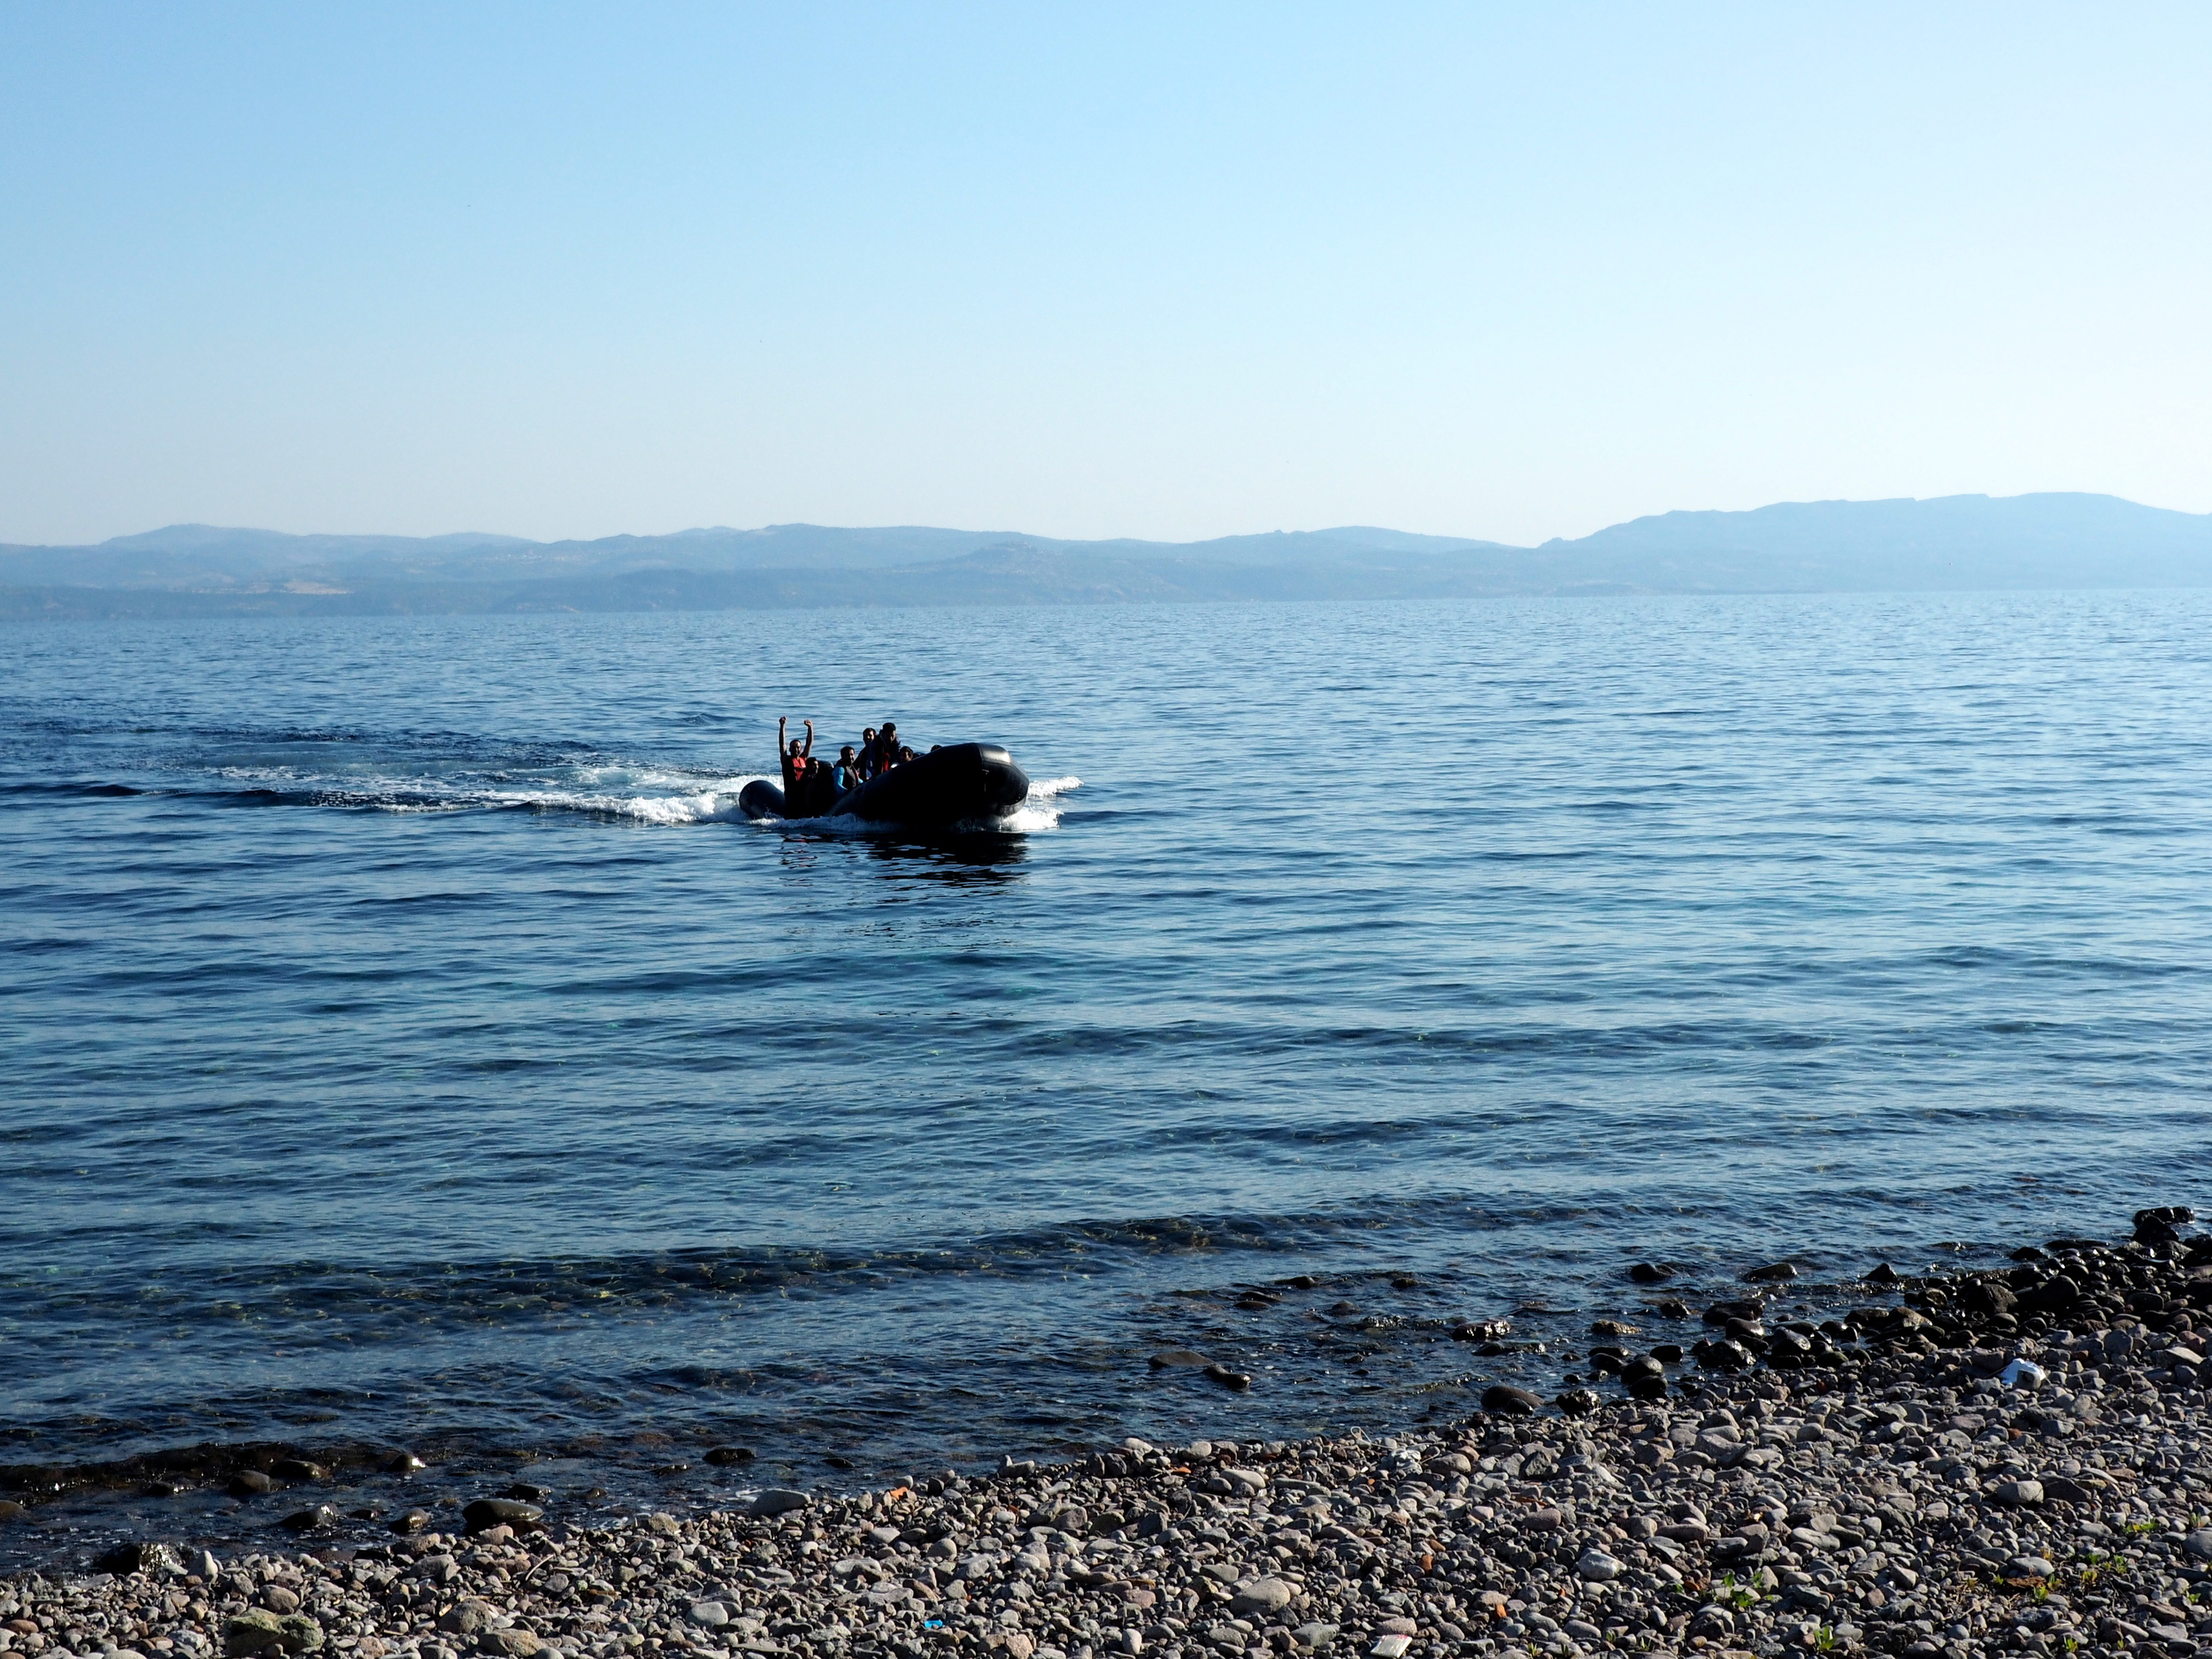 A rubber dinghy carrying migrants approaches the shore at Skala Sykaminias. The sea route from Turkey to Greece is increasingly popular, perhaps because only 31 migrants have died attempting it so far this year compared to the 1,800 who have died trying to reach Italy by boat from Libya.